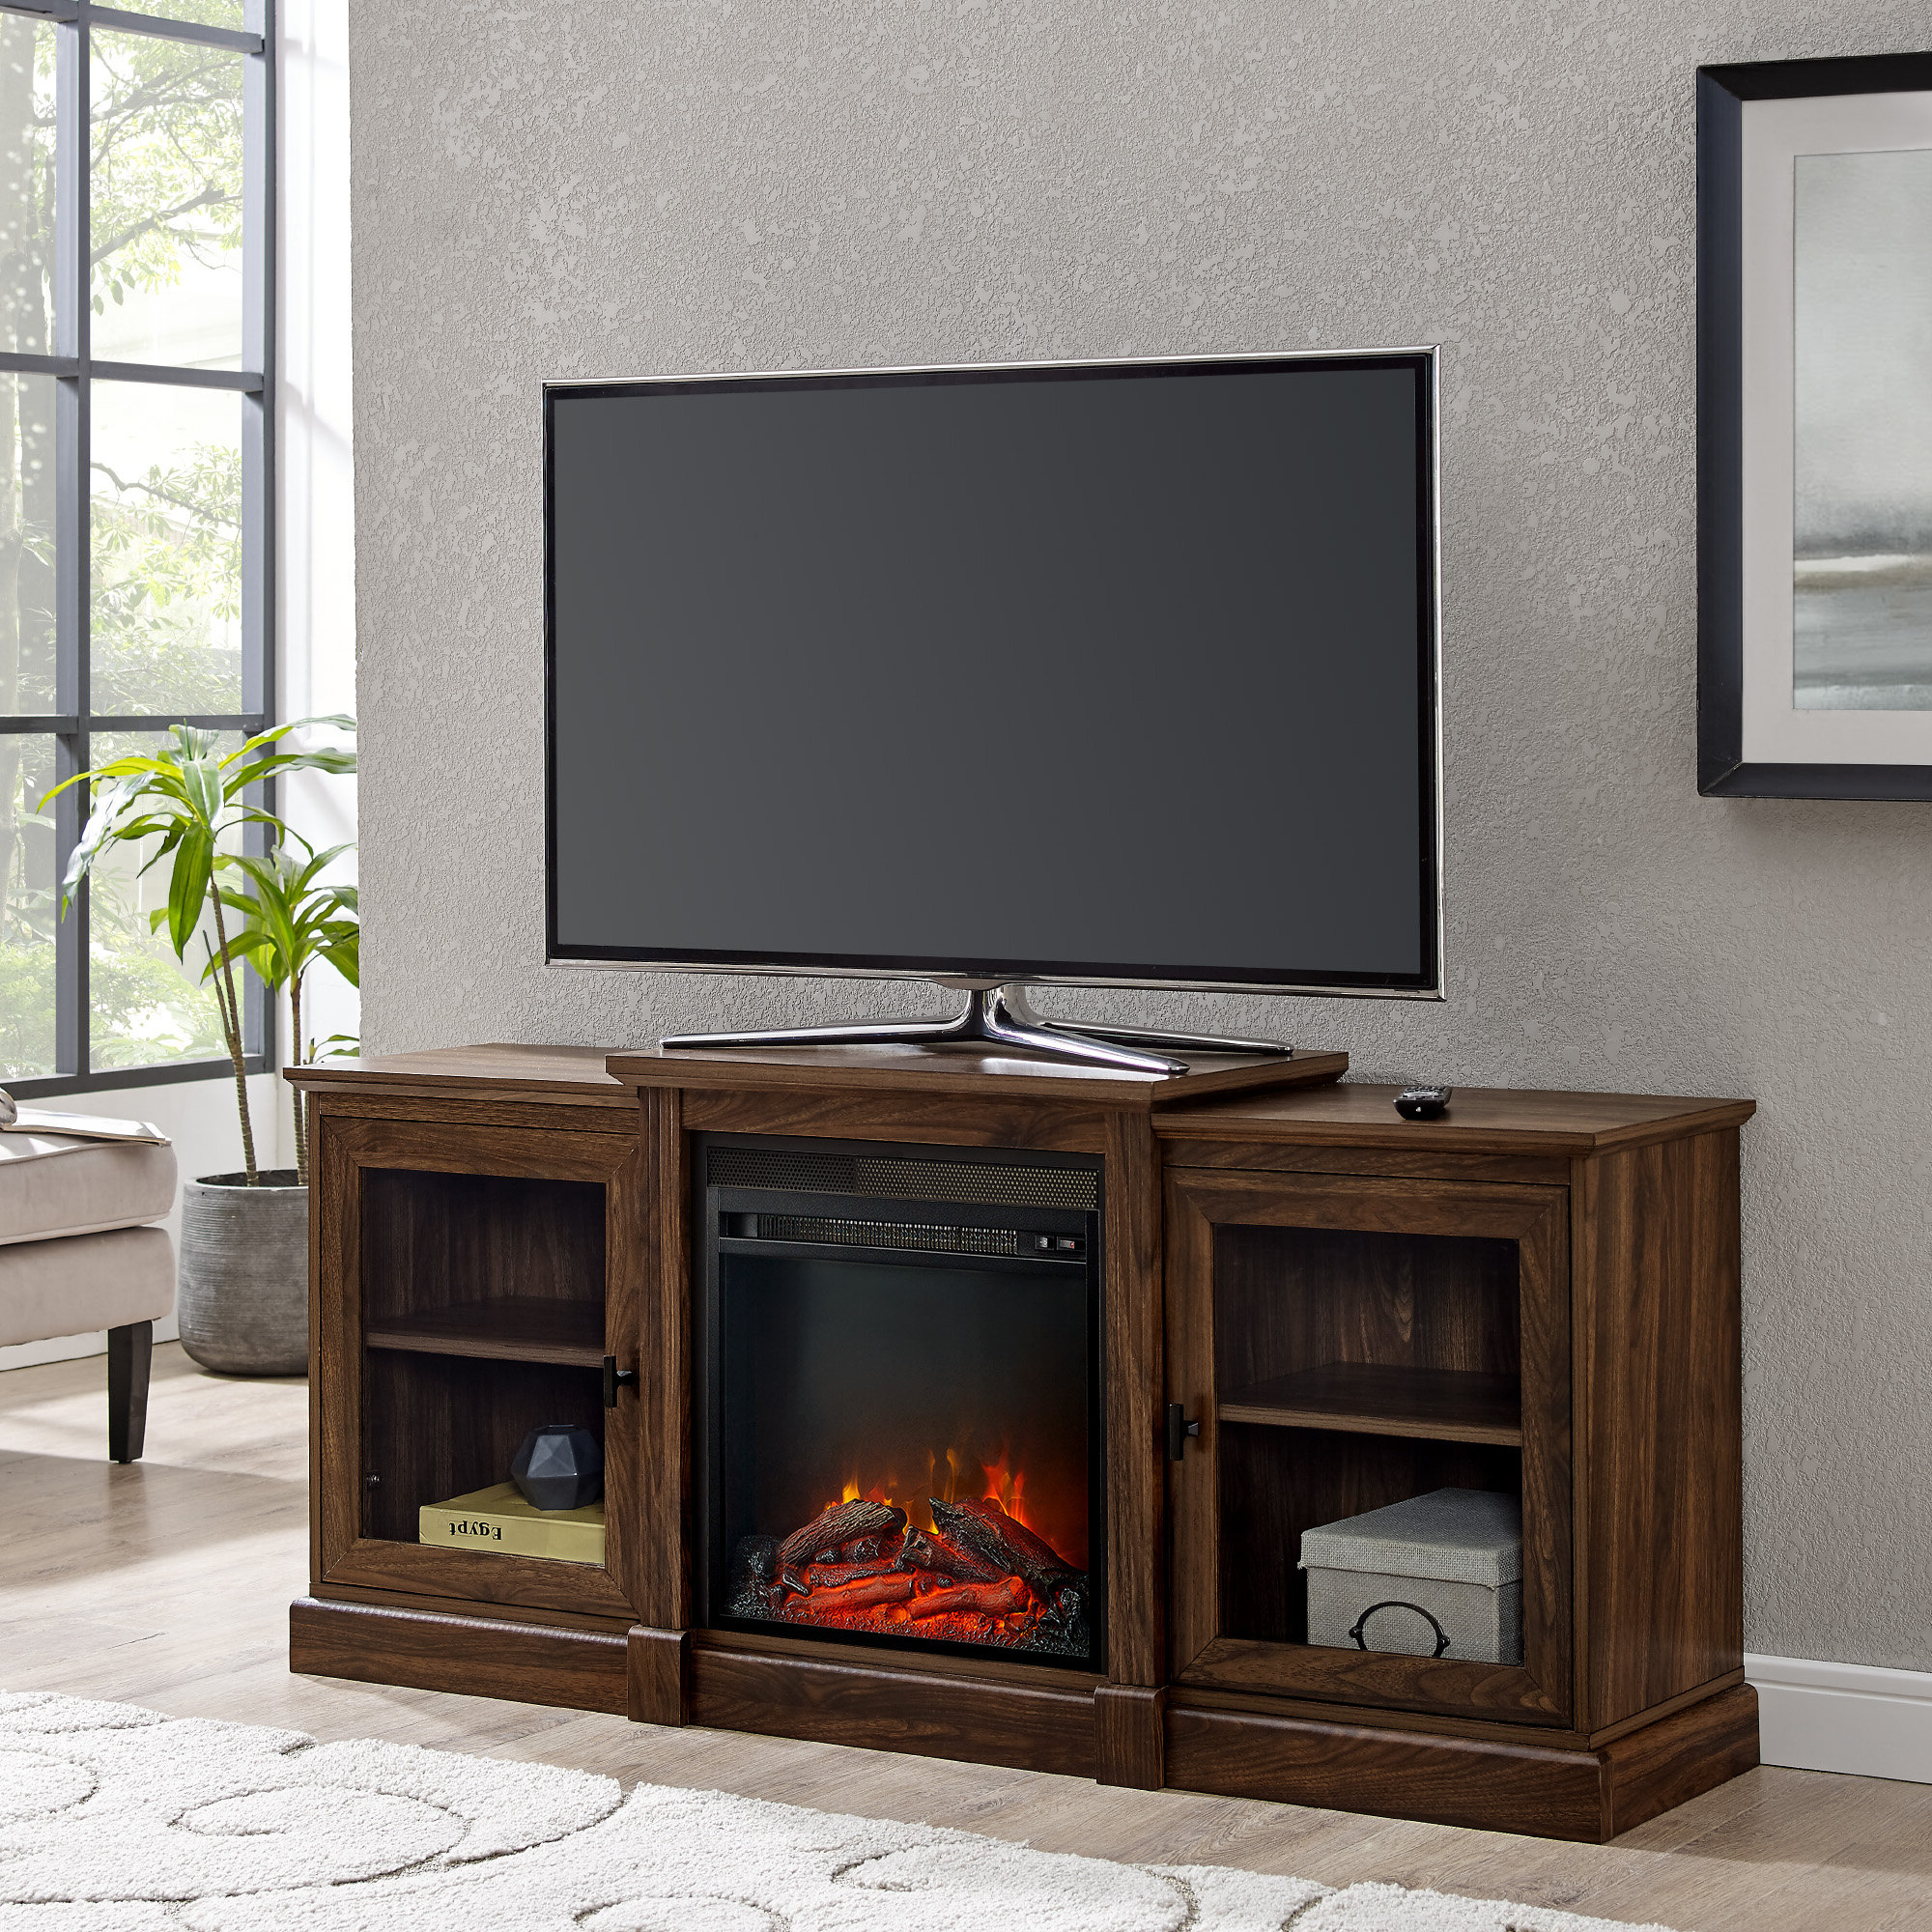 """Most Popular Calea Tv Stands For Tvs Up To 65"""" Within 65 Inch Tv Stand With Fireplace (View 4 of 25)"""